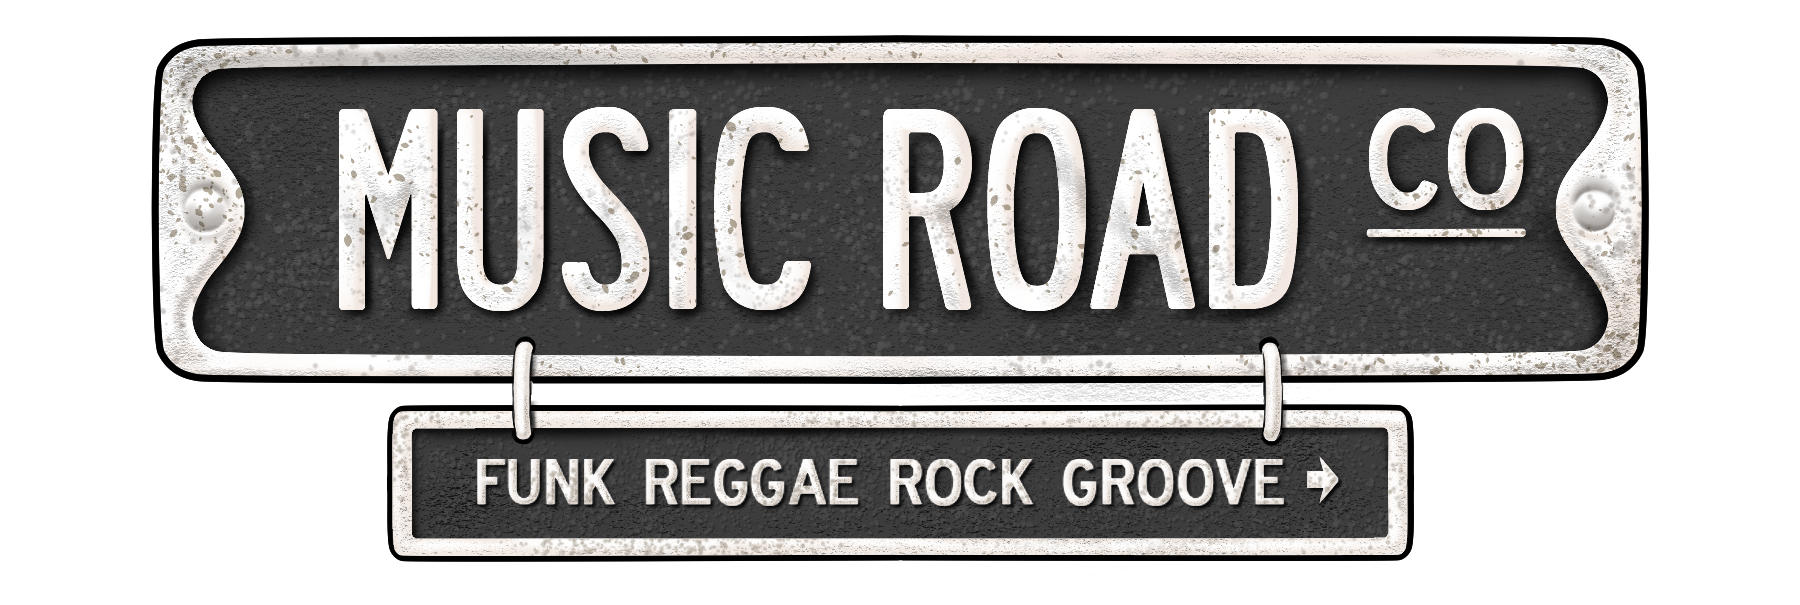 Music Road Co